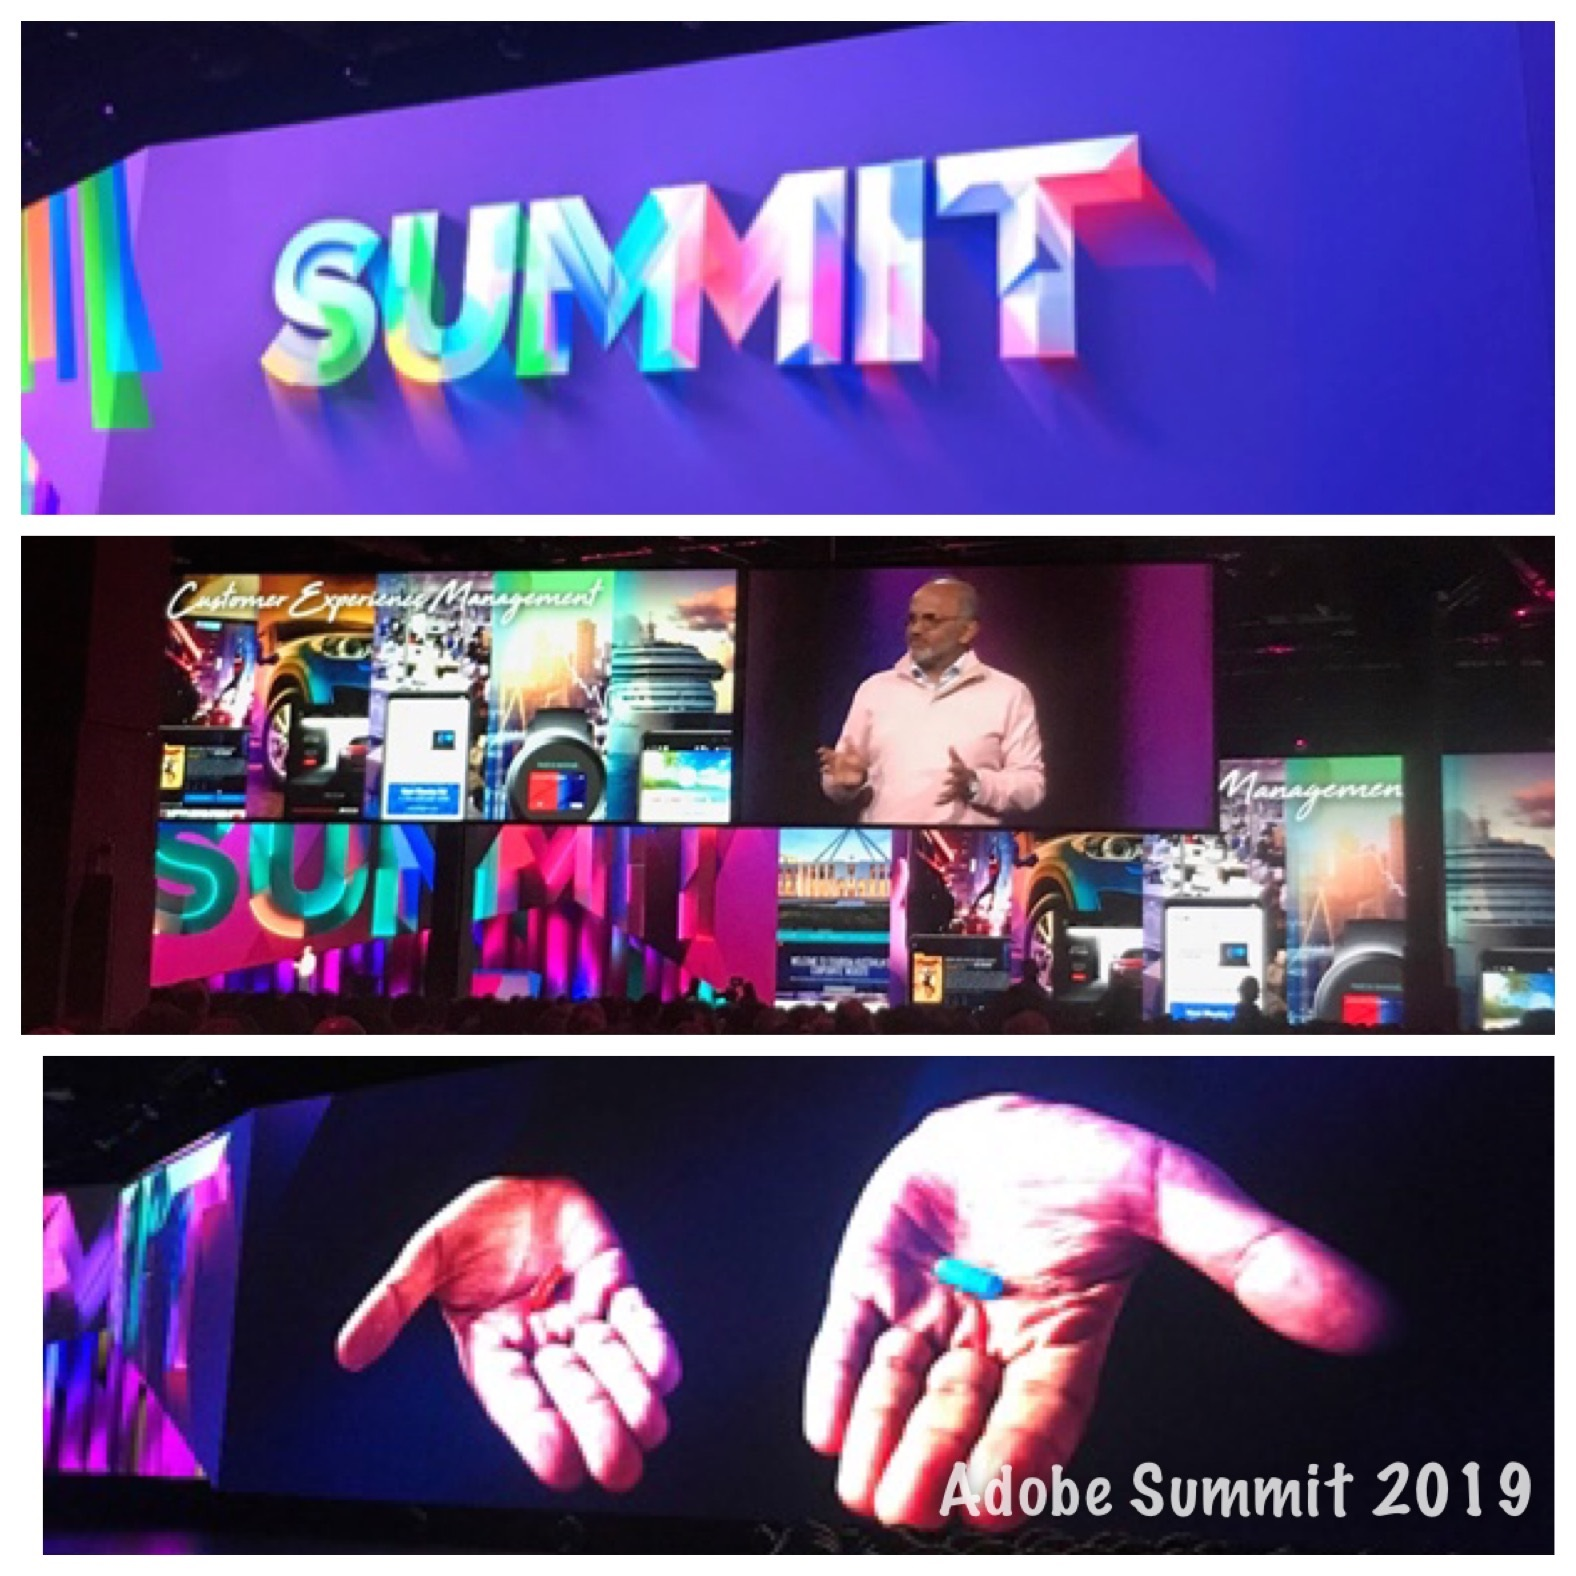 Cision's Adobe Summit Takeaways